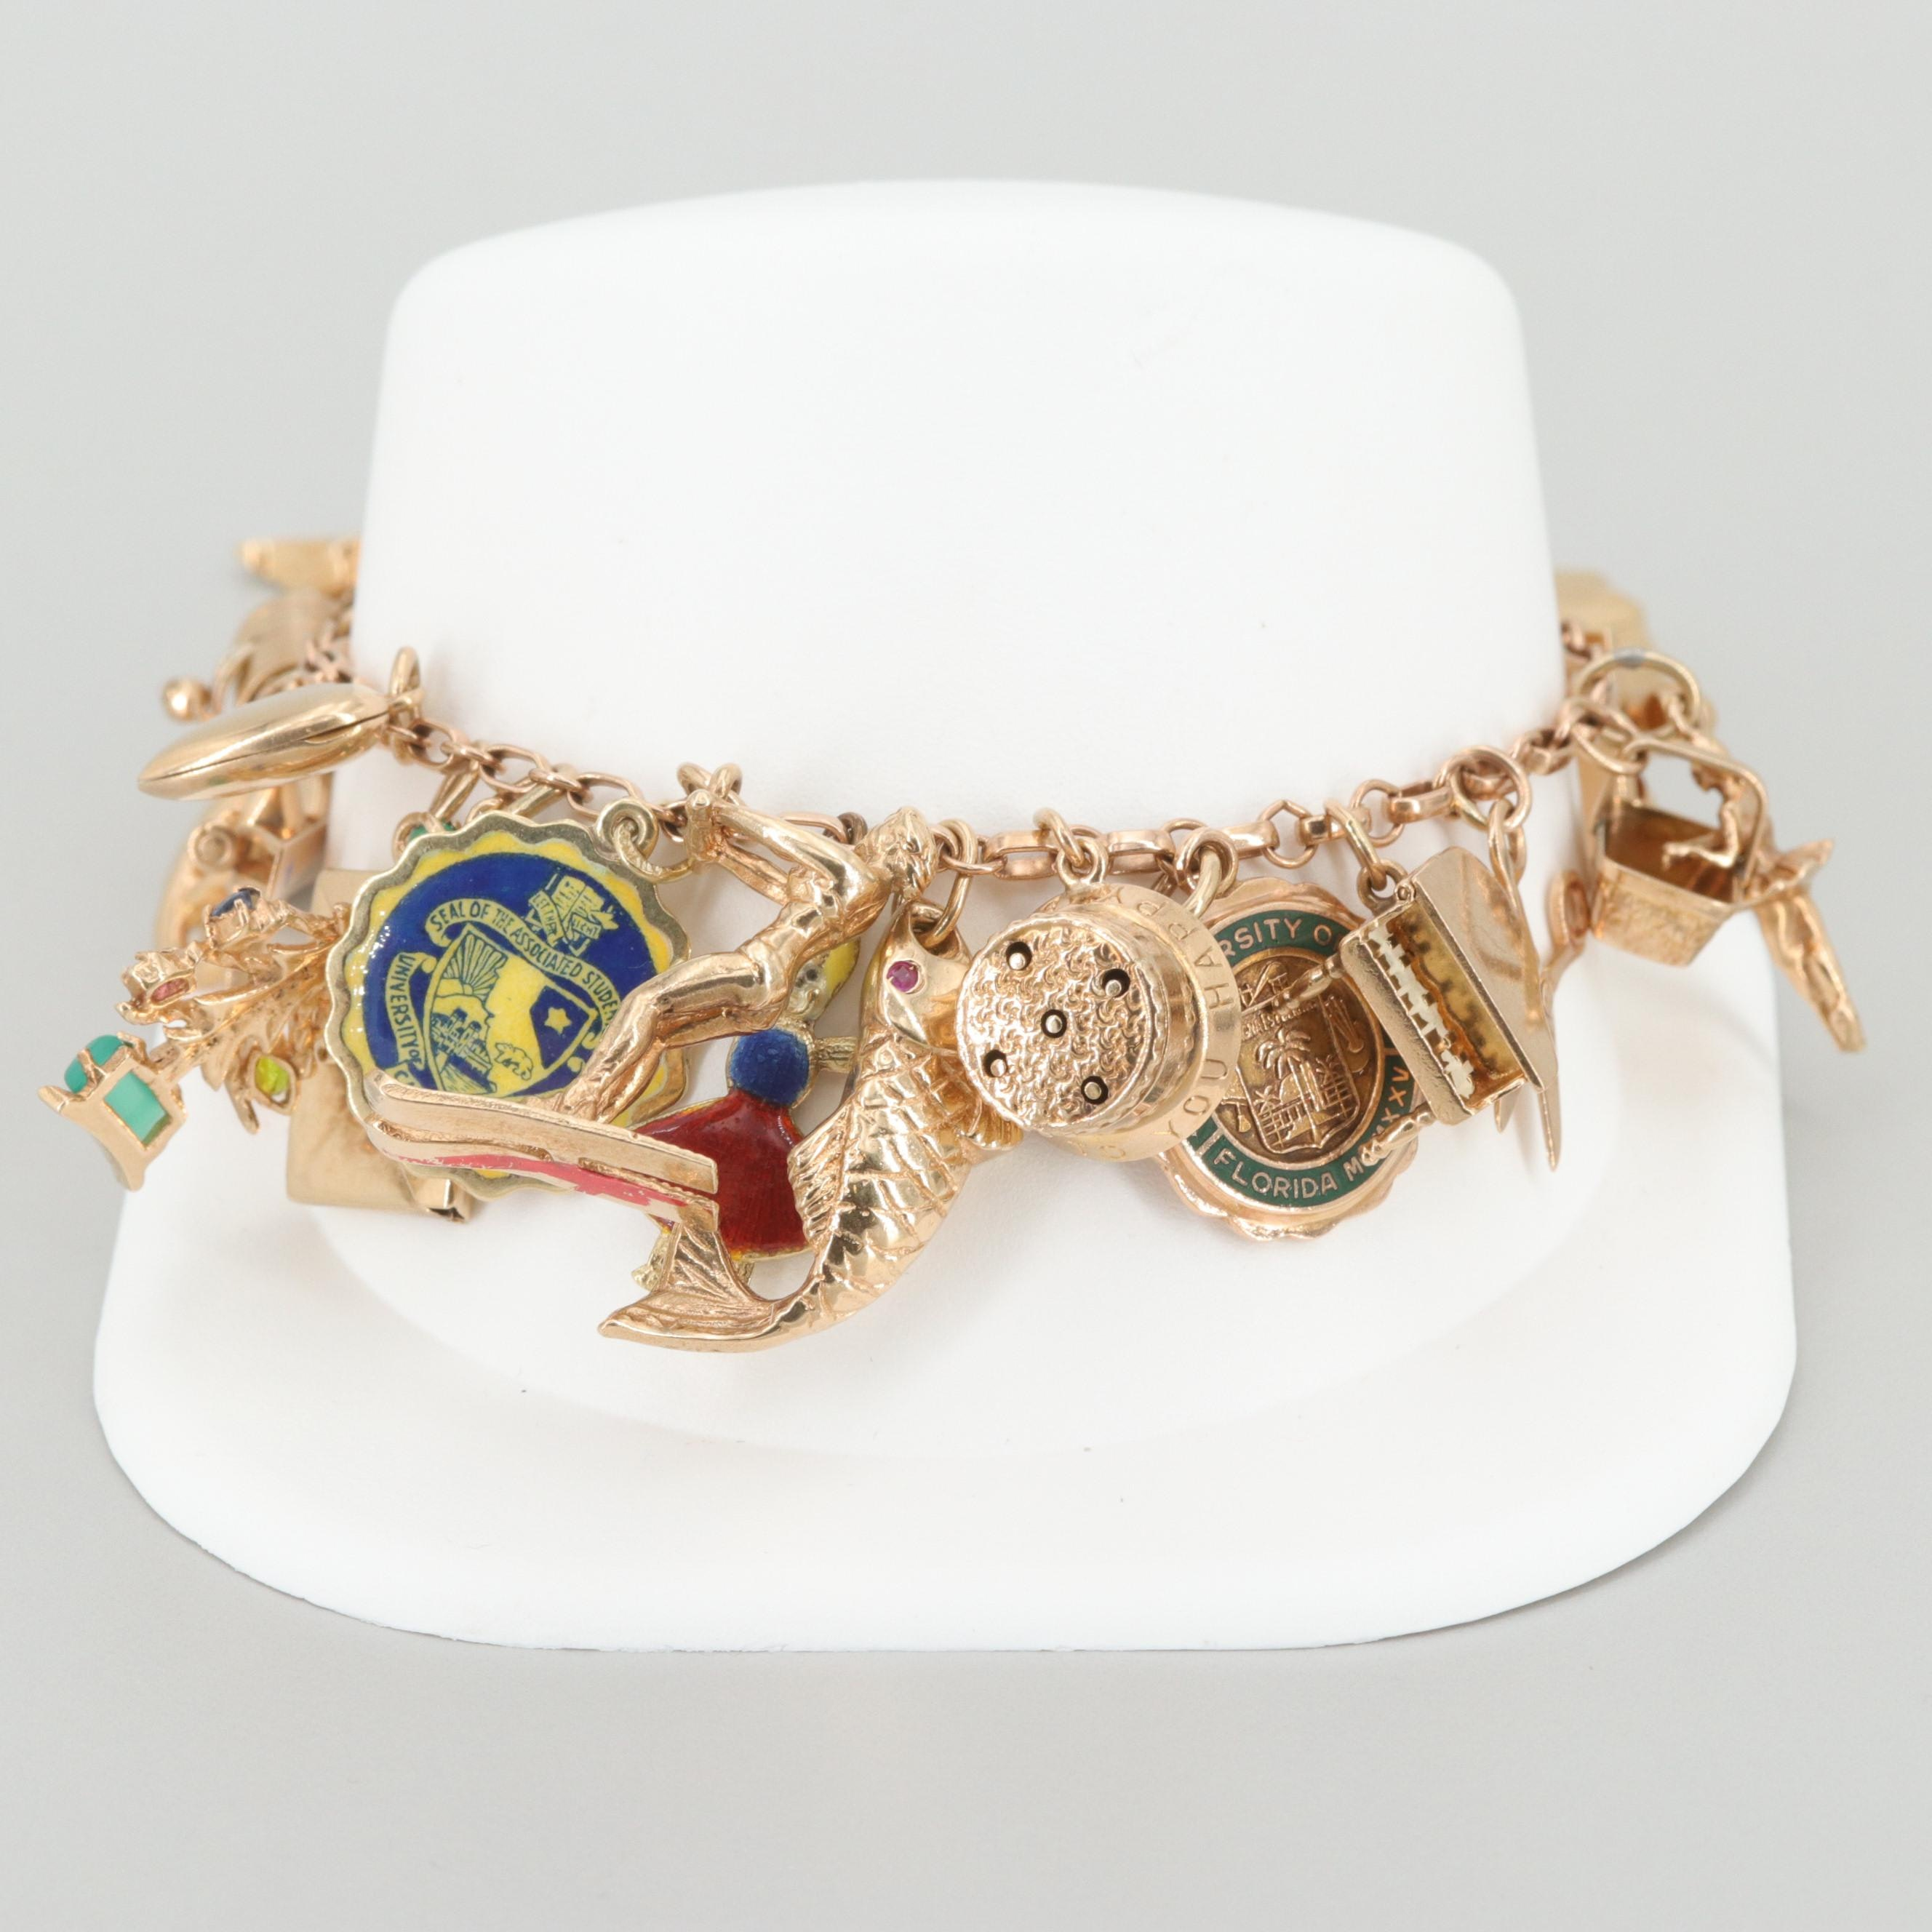 14K Yellow Gold Enamel and Glass Charm Bracelet with 10K and Articulated Charms